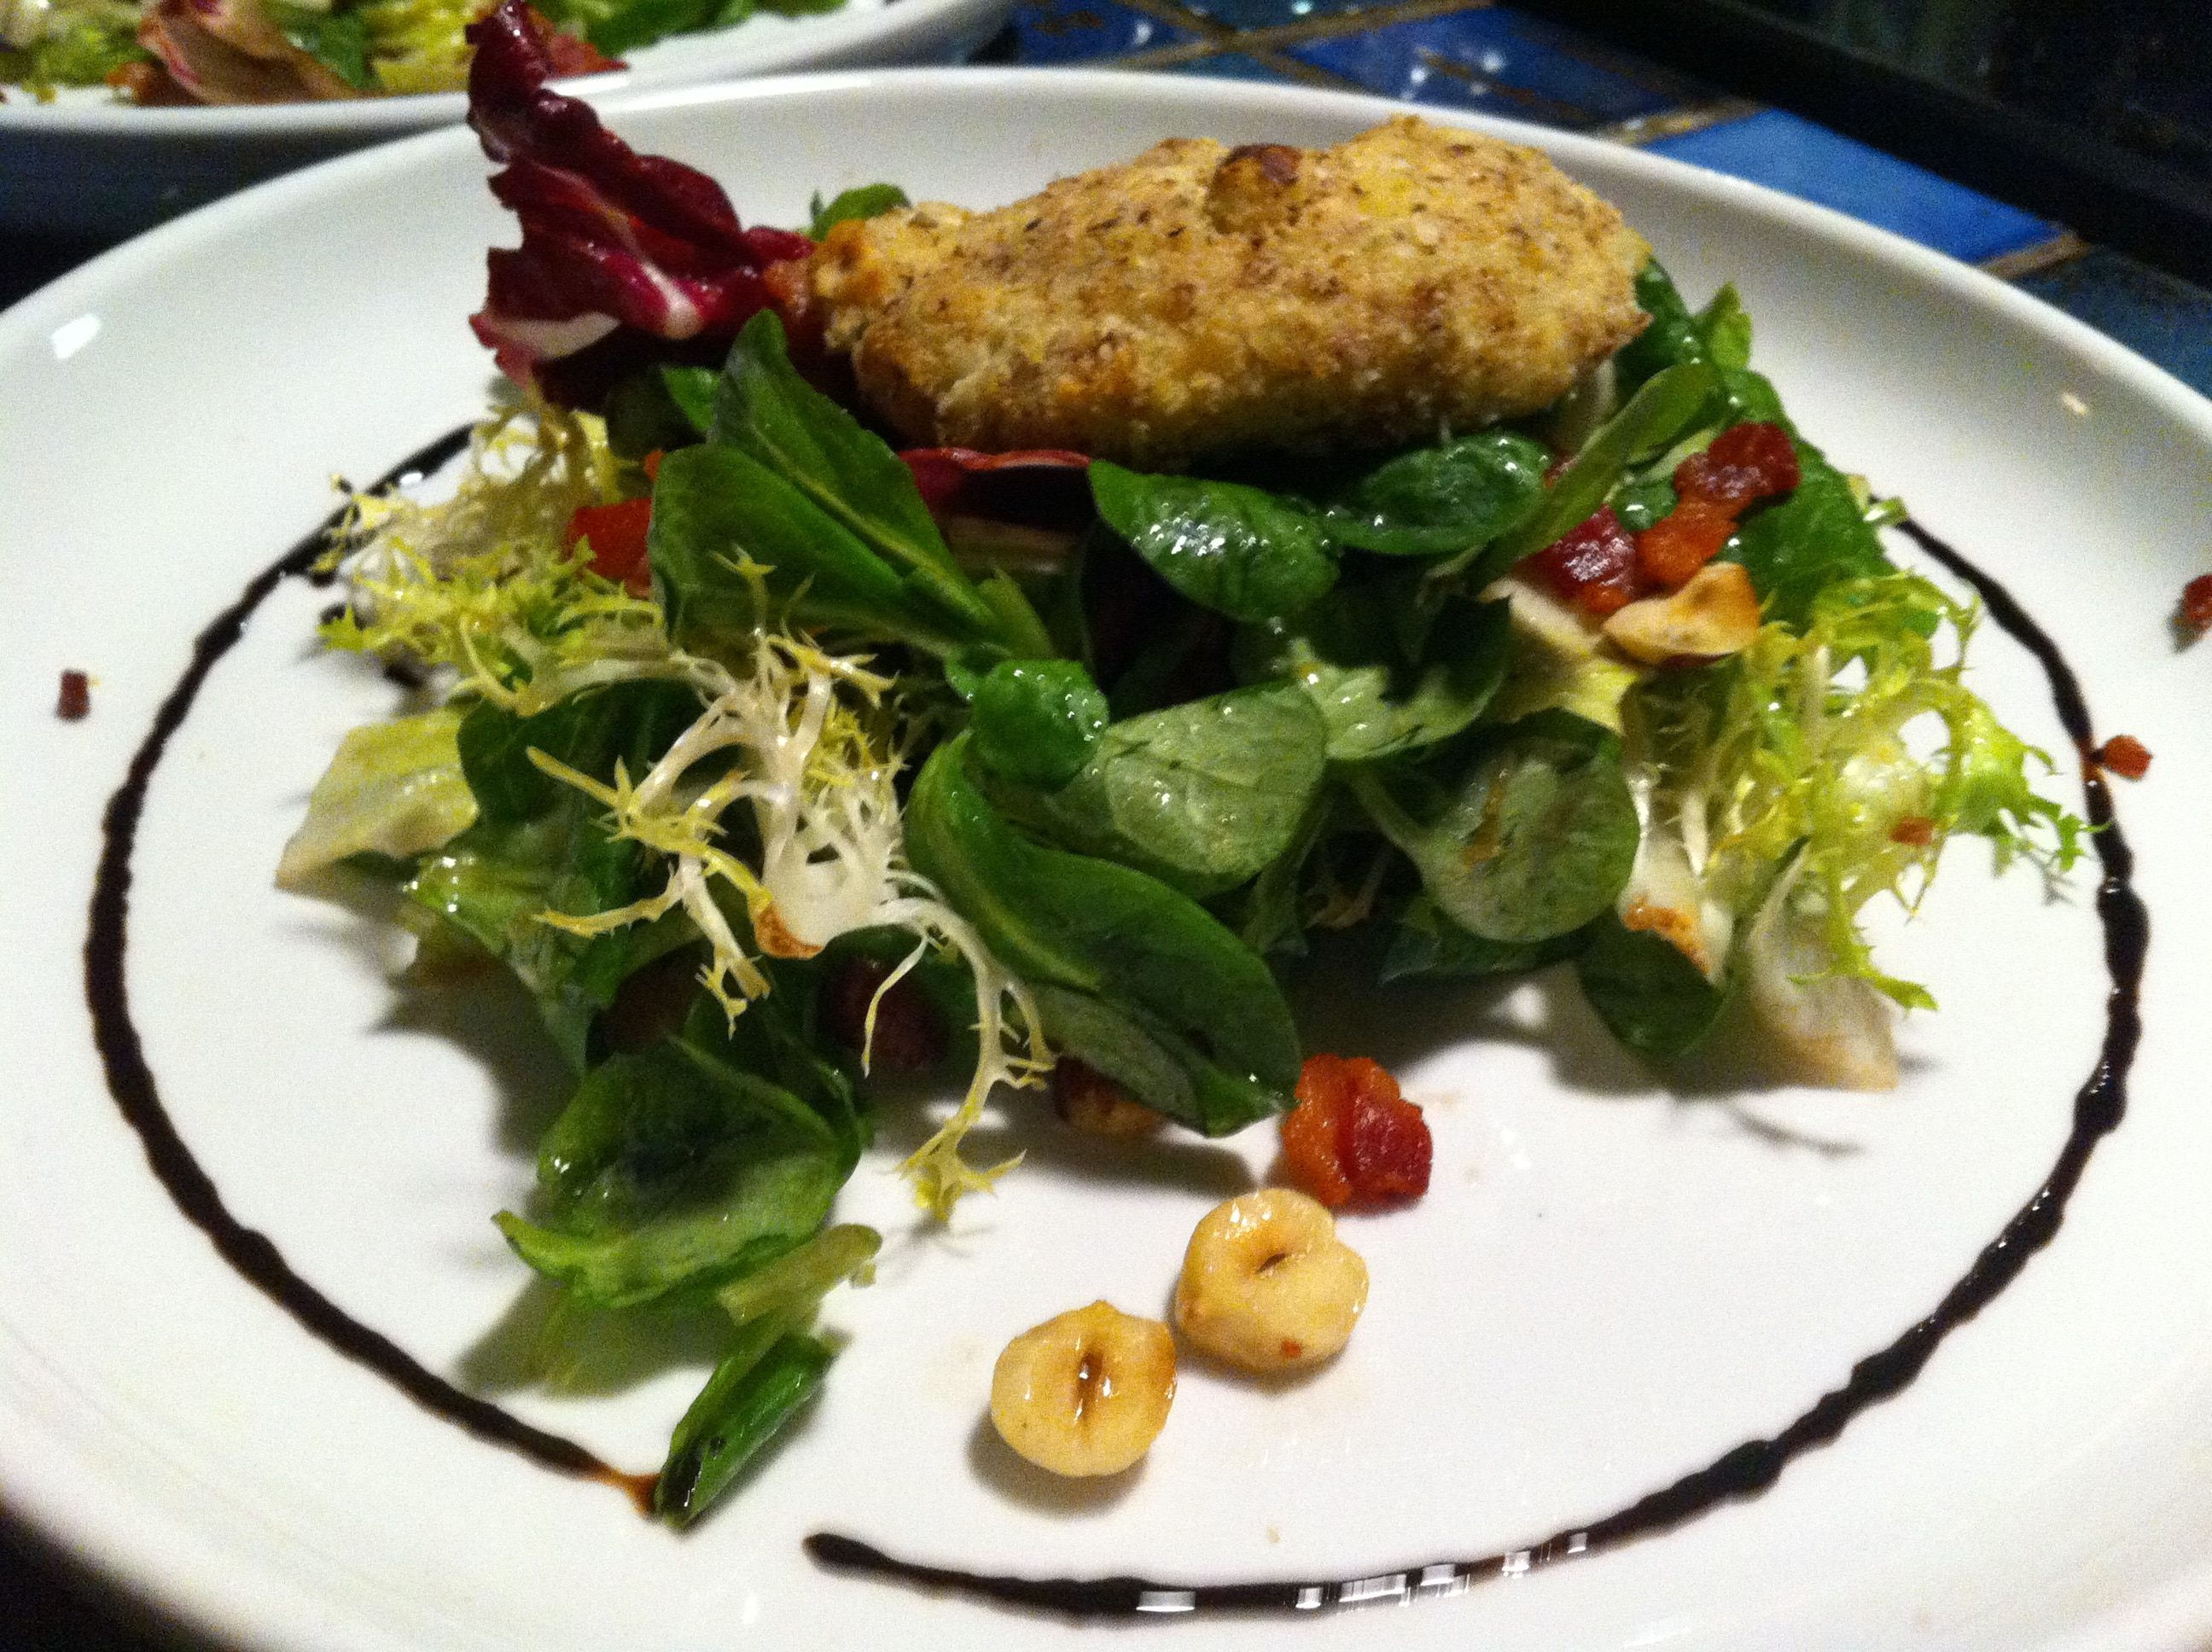 Halzelnut crusted Goat cheese salad